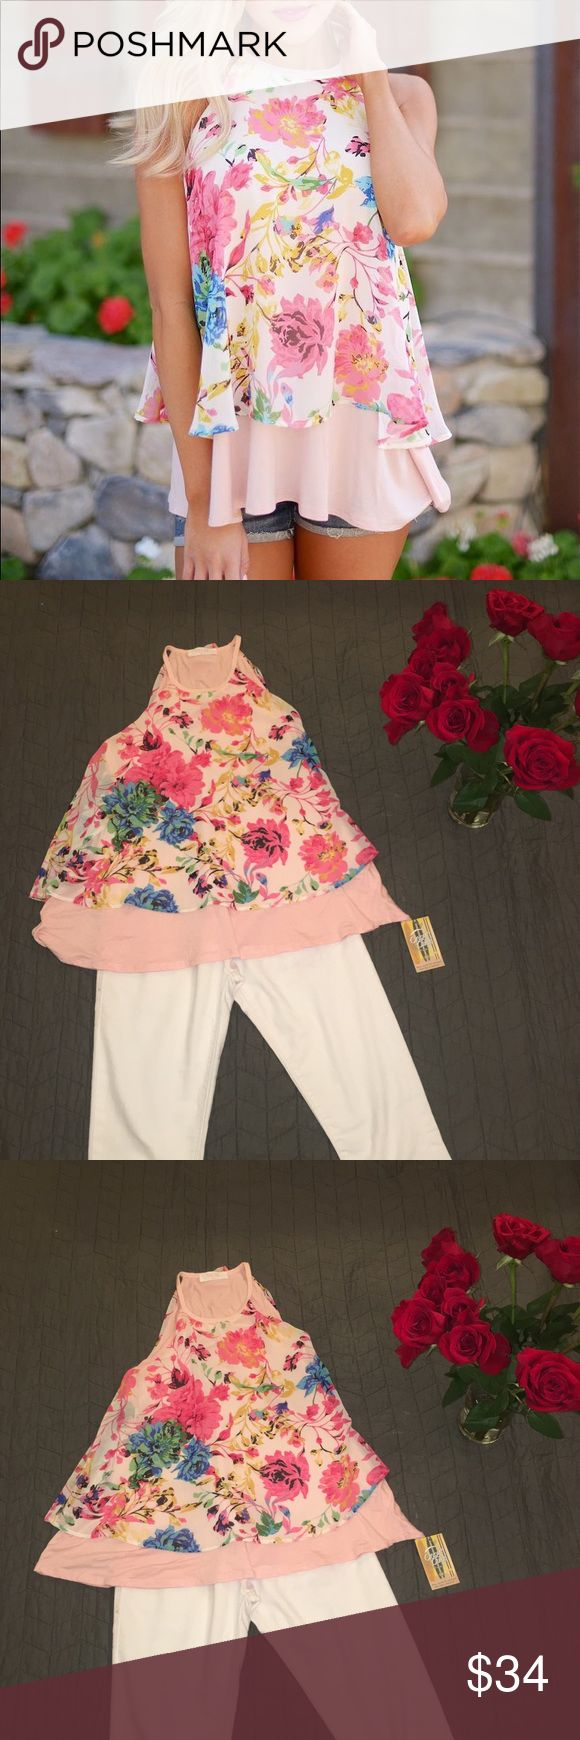 New Boutique blush top with floral print small New closet candy boutique making me blush floral top in a size small. Perfect for spring. Brand new with tags Closet Candy Boutique Tops Tank Tops